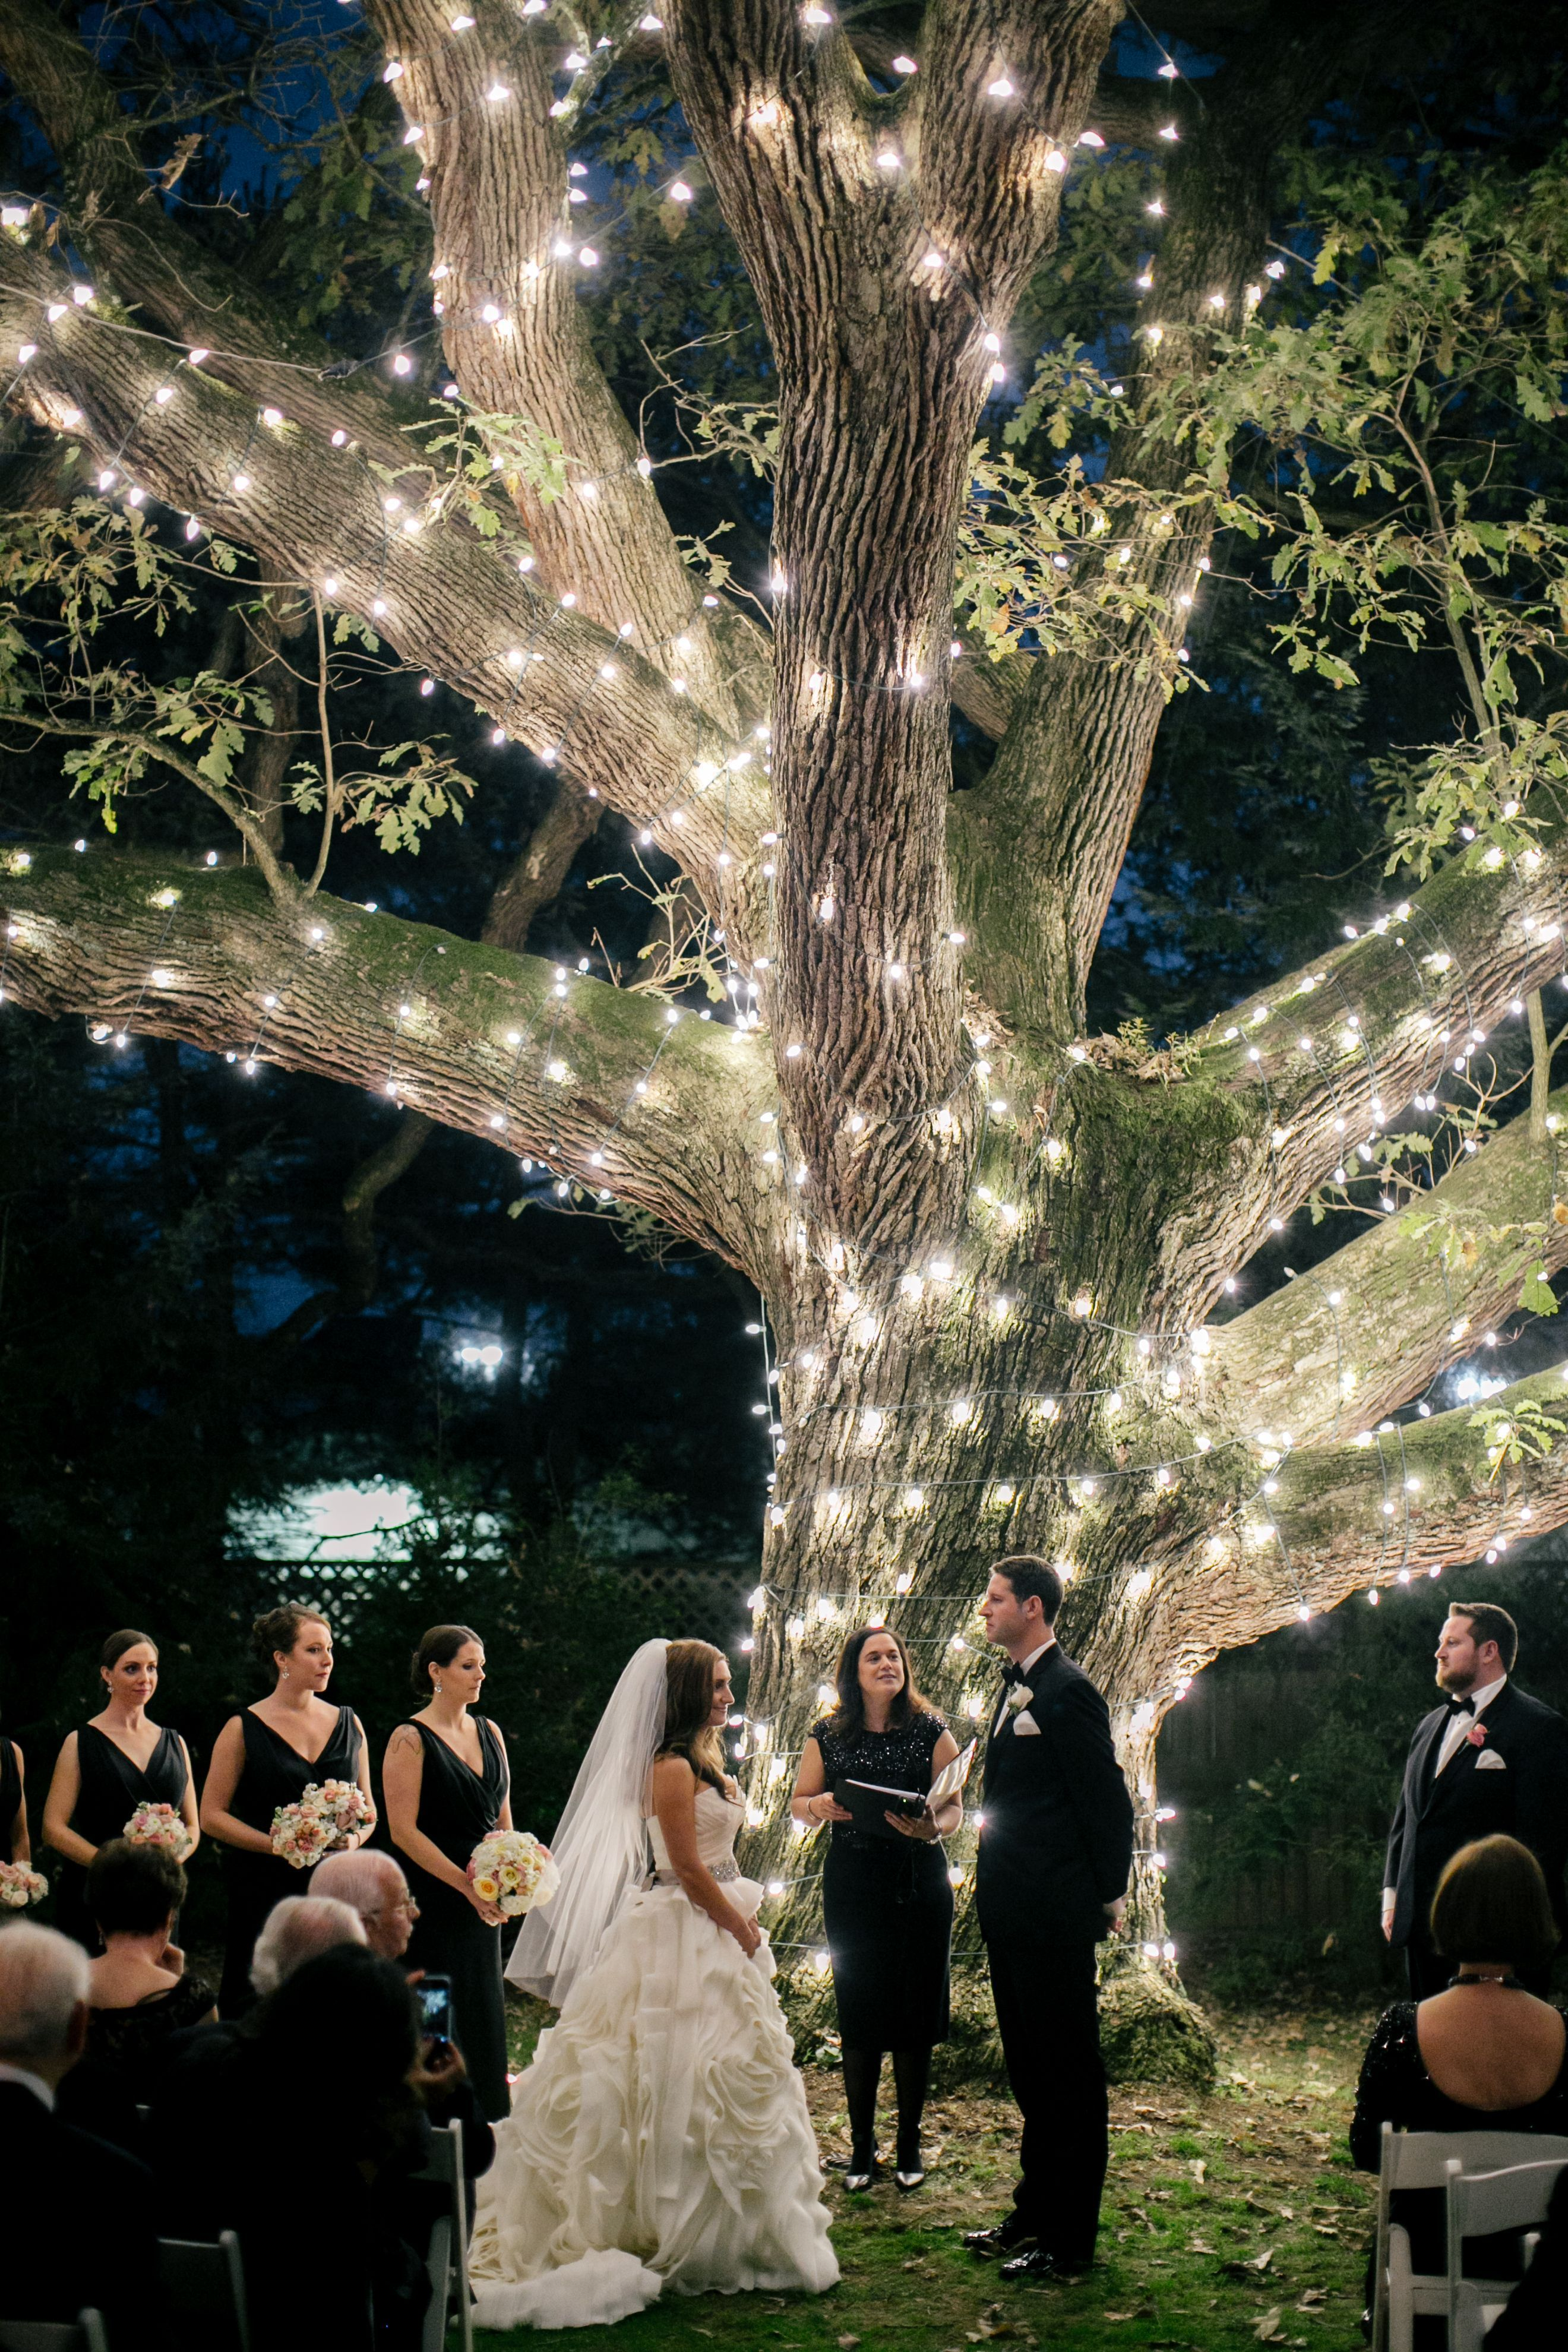 49 Very Romantic Backyard Wedding Decor Ideas | Wedding ...